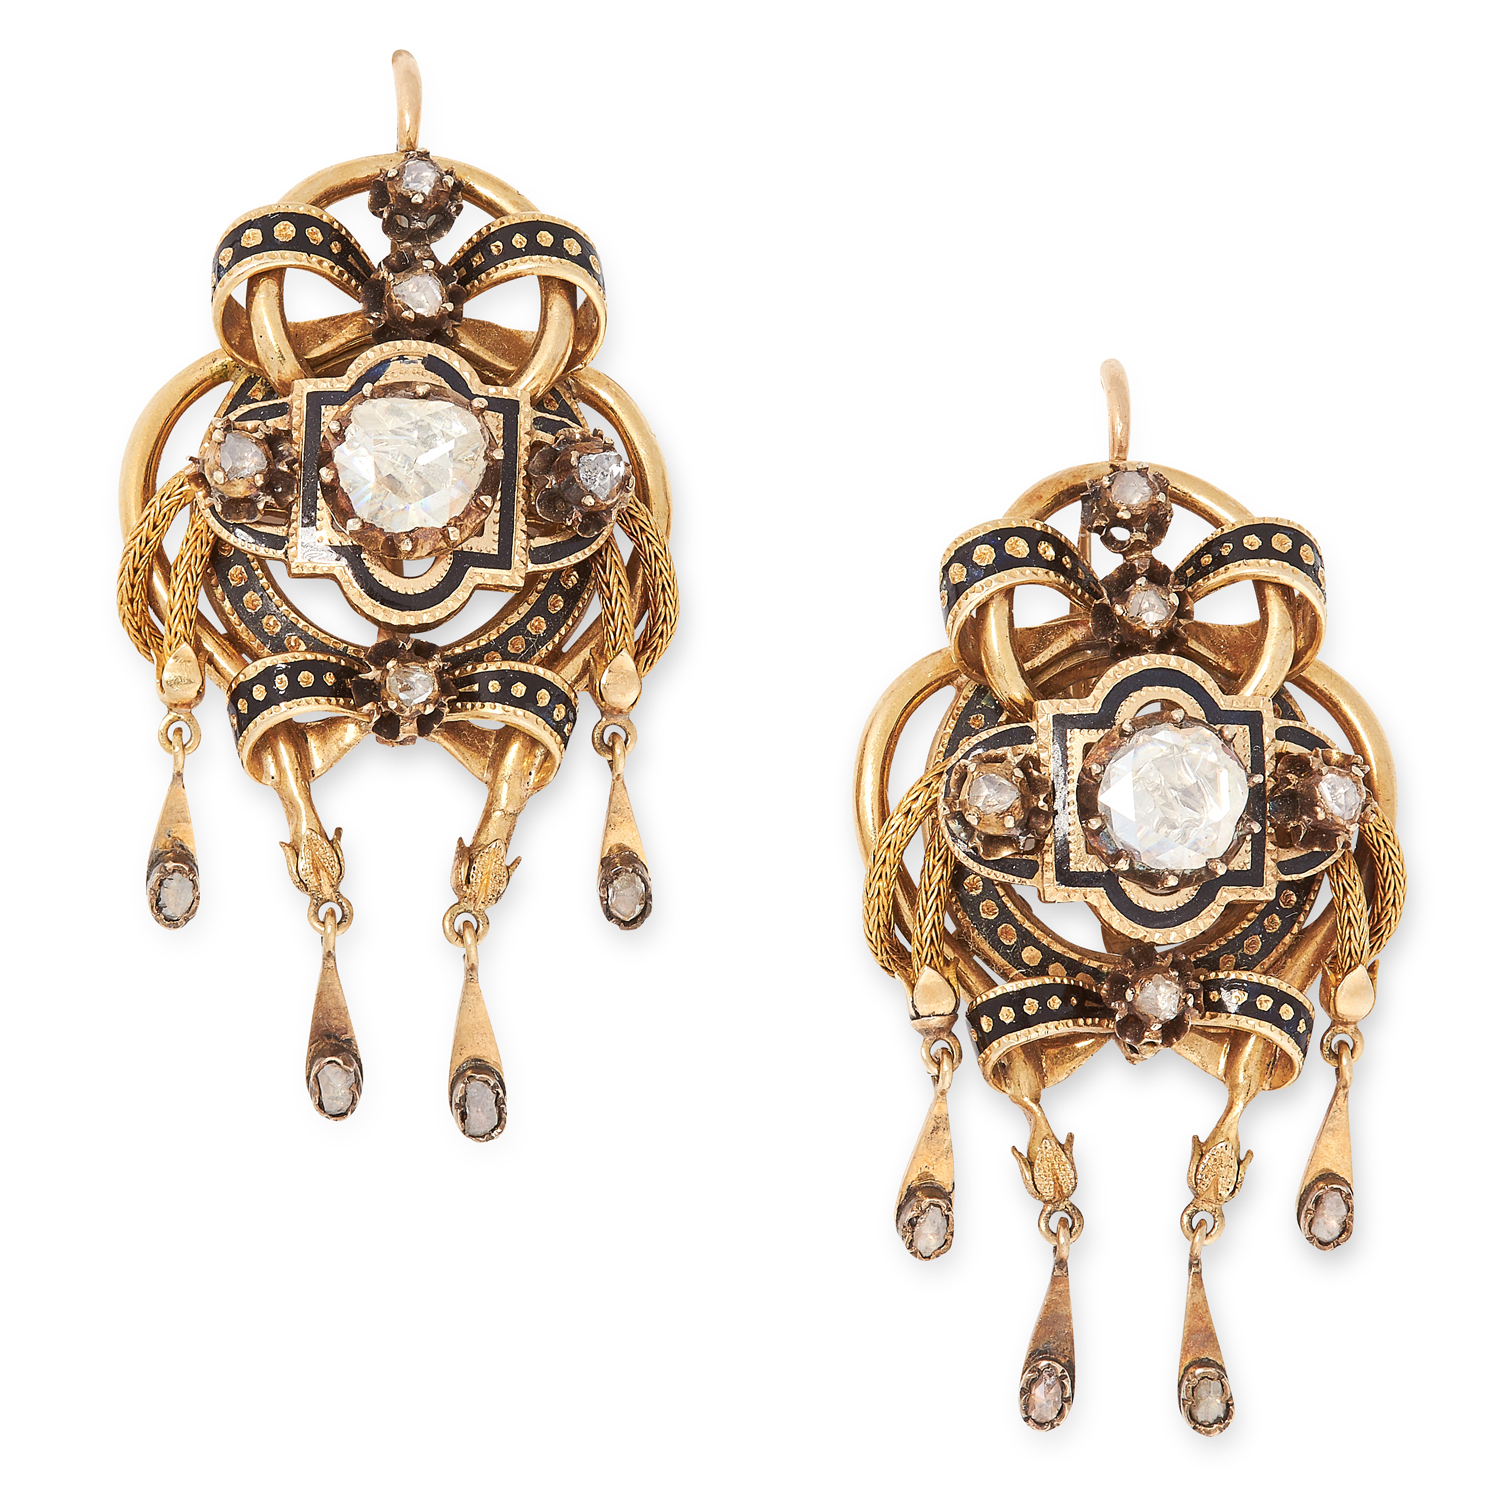 A PAIR OF ANTIQUE ENAMEL AND DIAMOND EARRINGS, SPANISH 19TH CENTURY in yellow gold, set with central